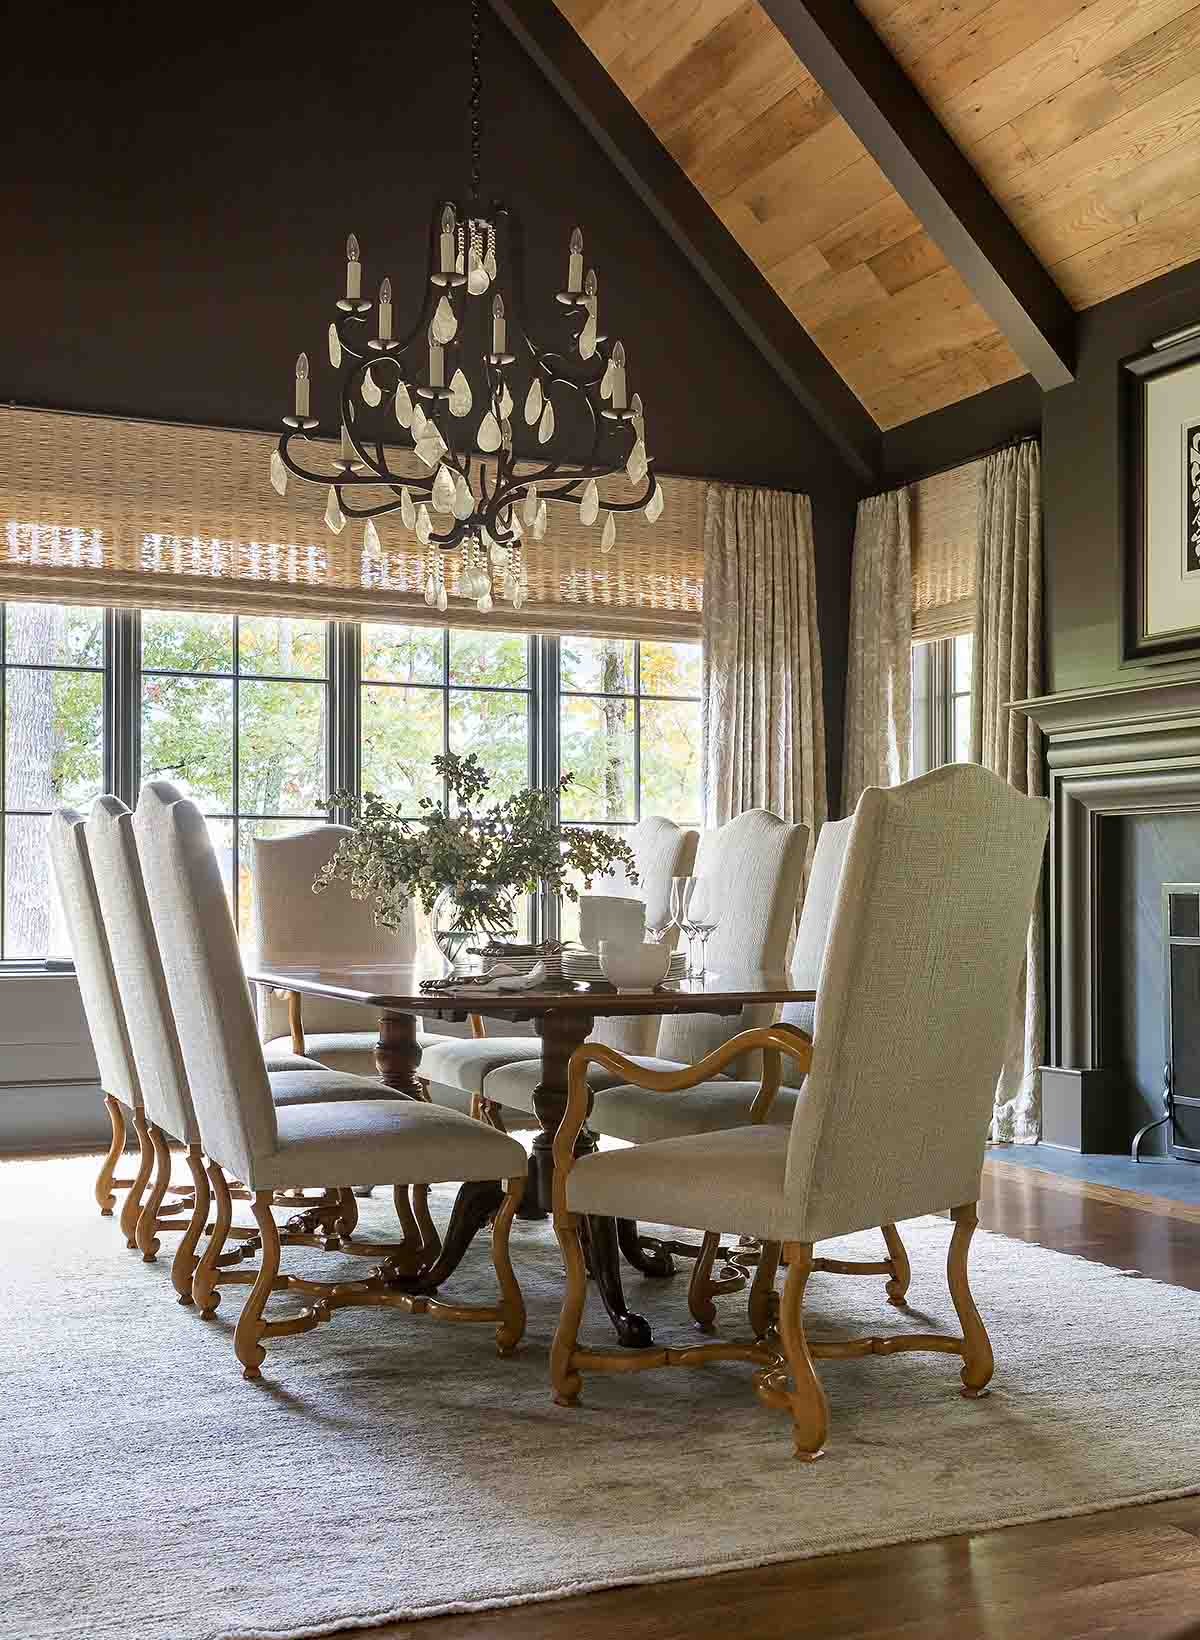 Paneled Ceiling - Blackberry Farm Smoky Mountain Home - R.Higgins Interiors Design